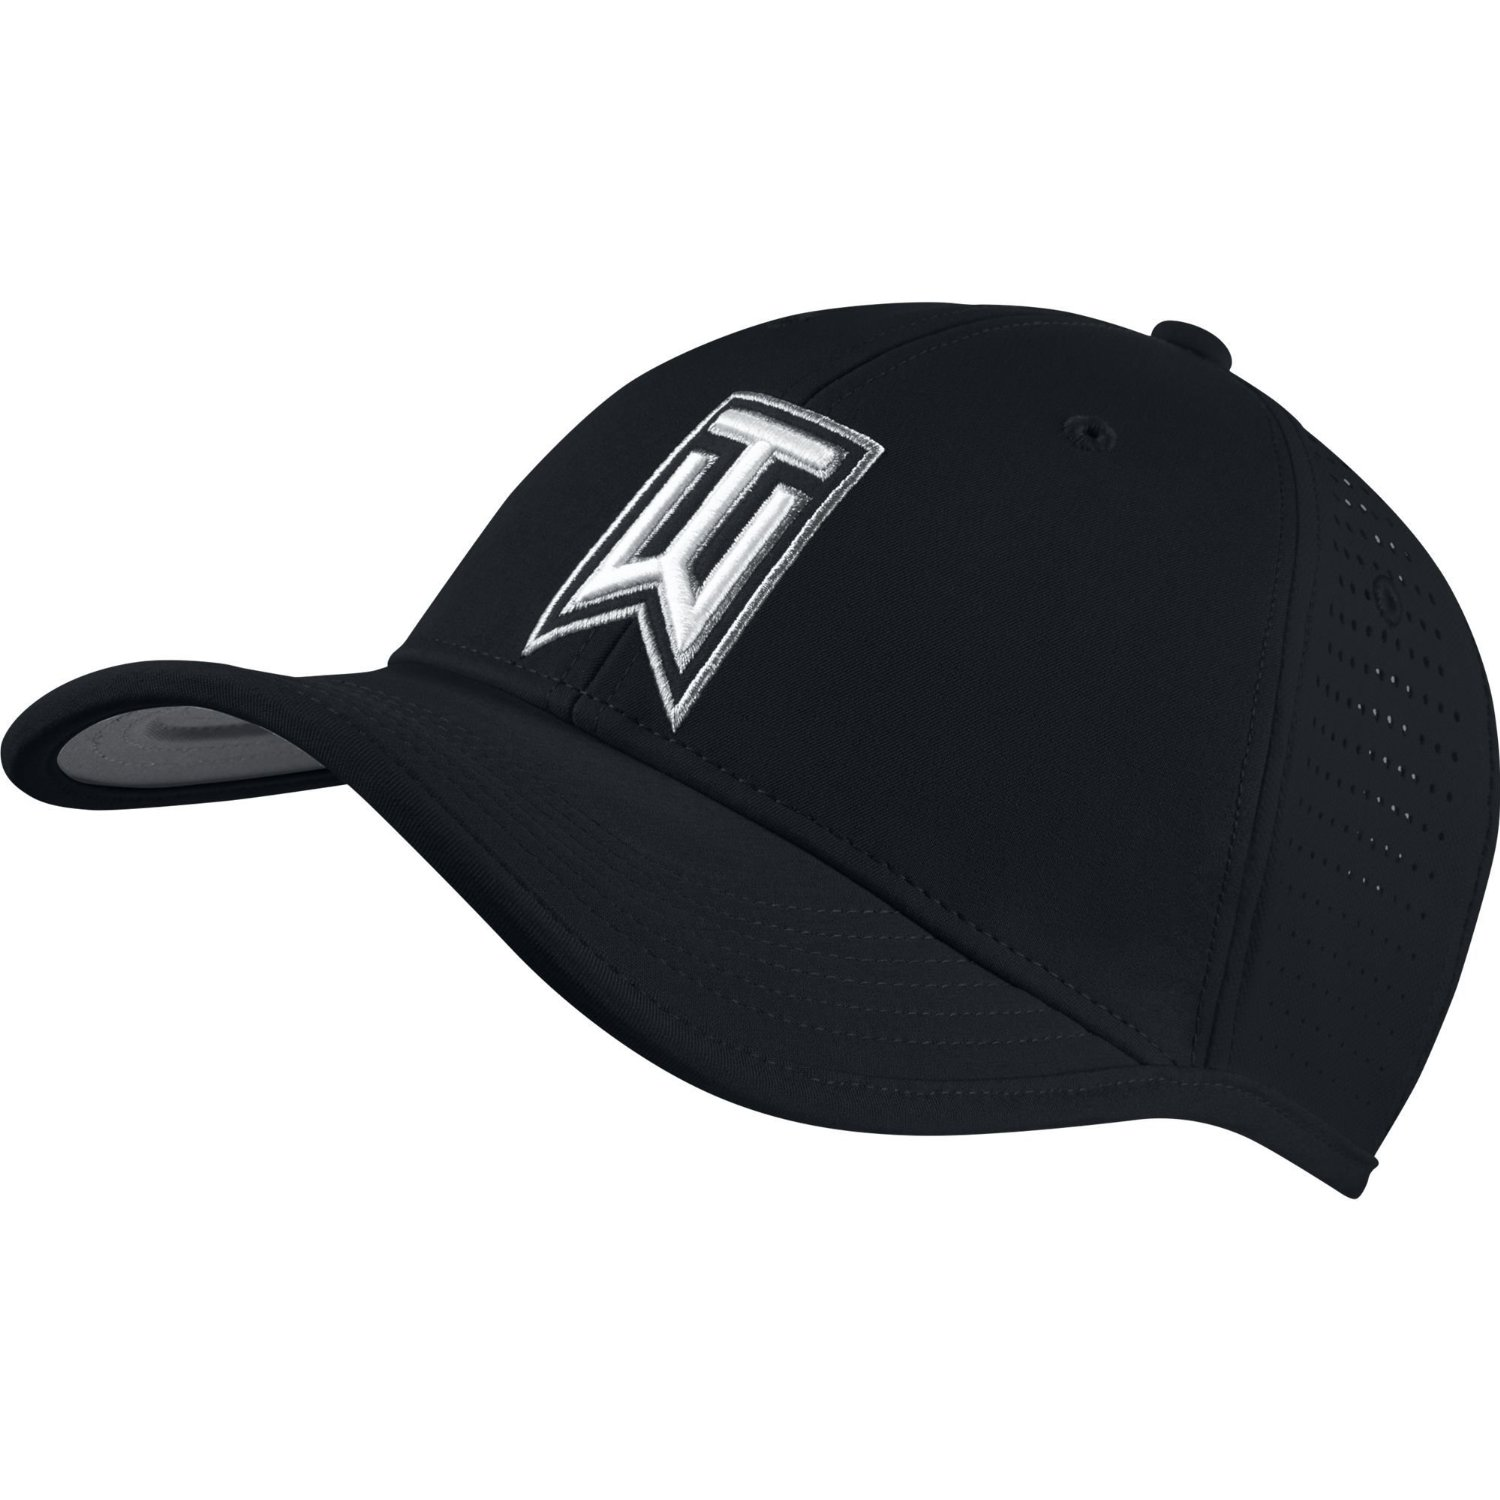 2ff3dffae13 Get Quotations · NEW Nike Tiger Woods Ultralight Tour Perforated Black White  Adjustable Hat Cap